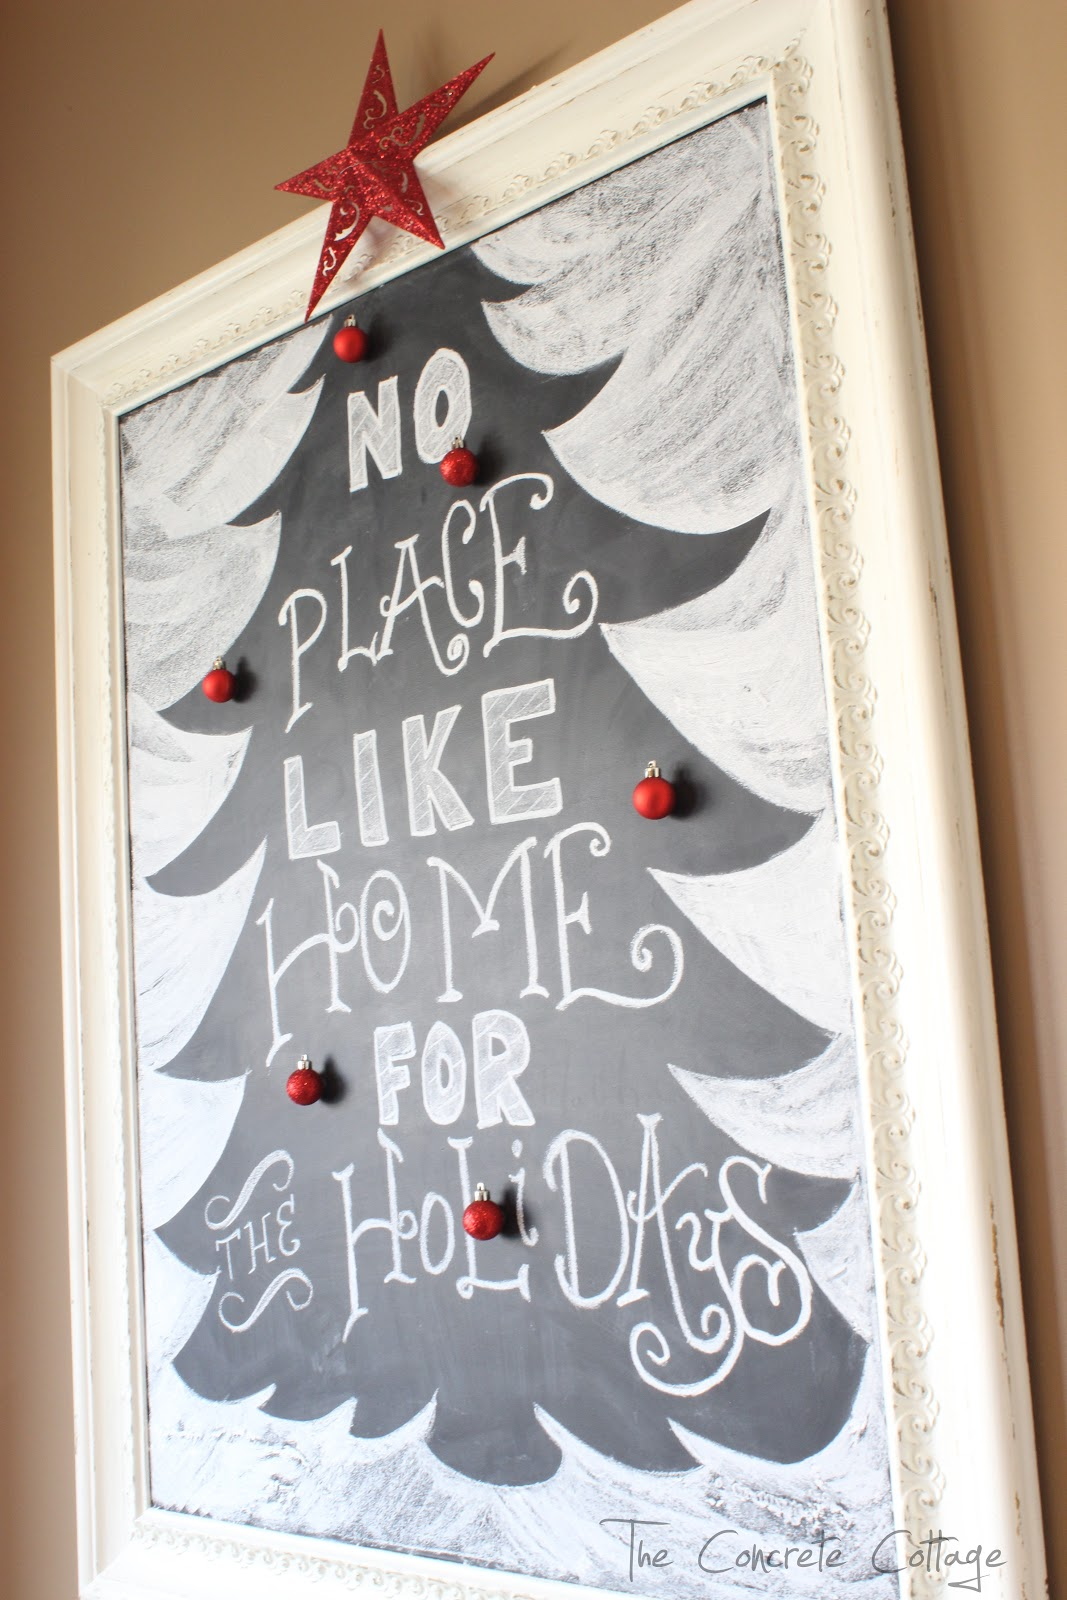 The Concrete Cottage: Christmas Tree Chalkboard